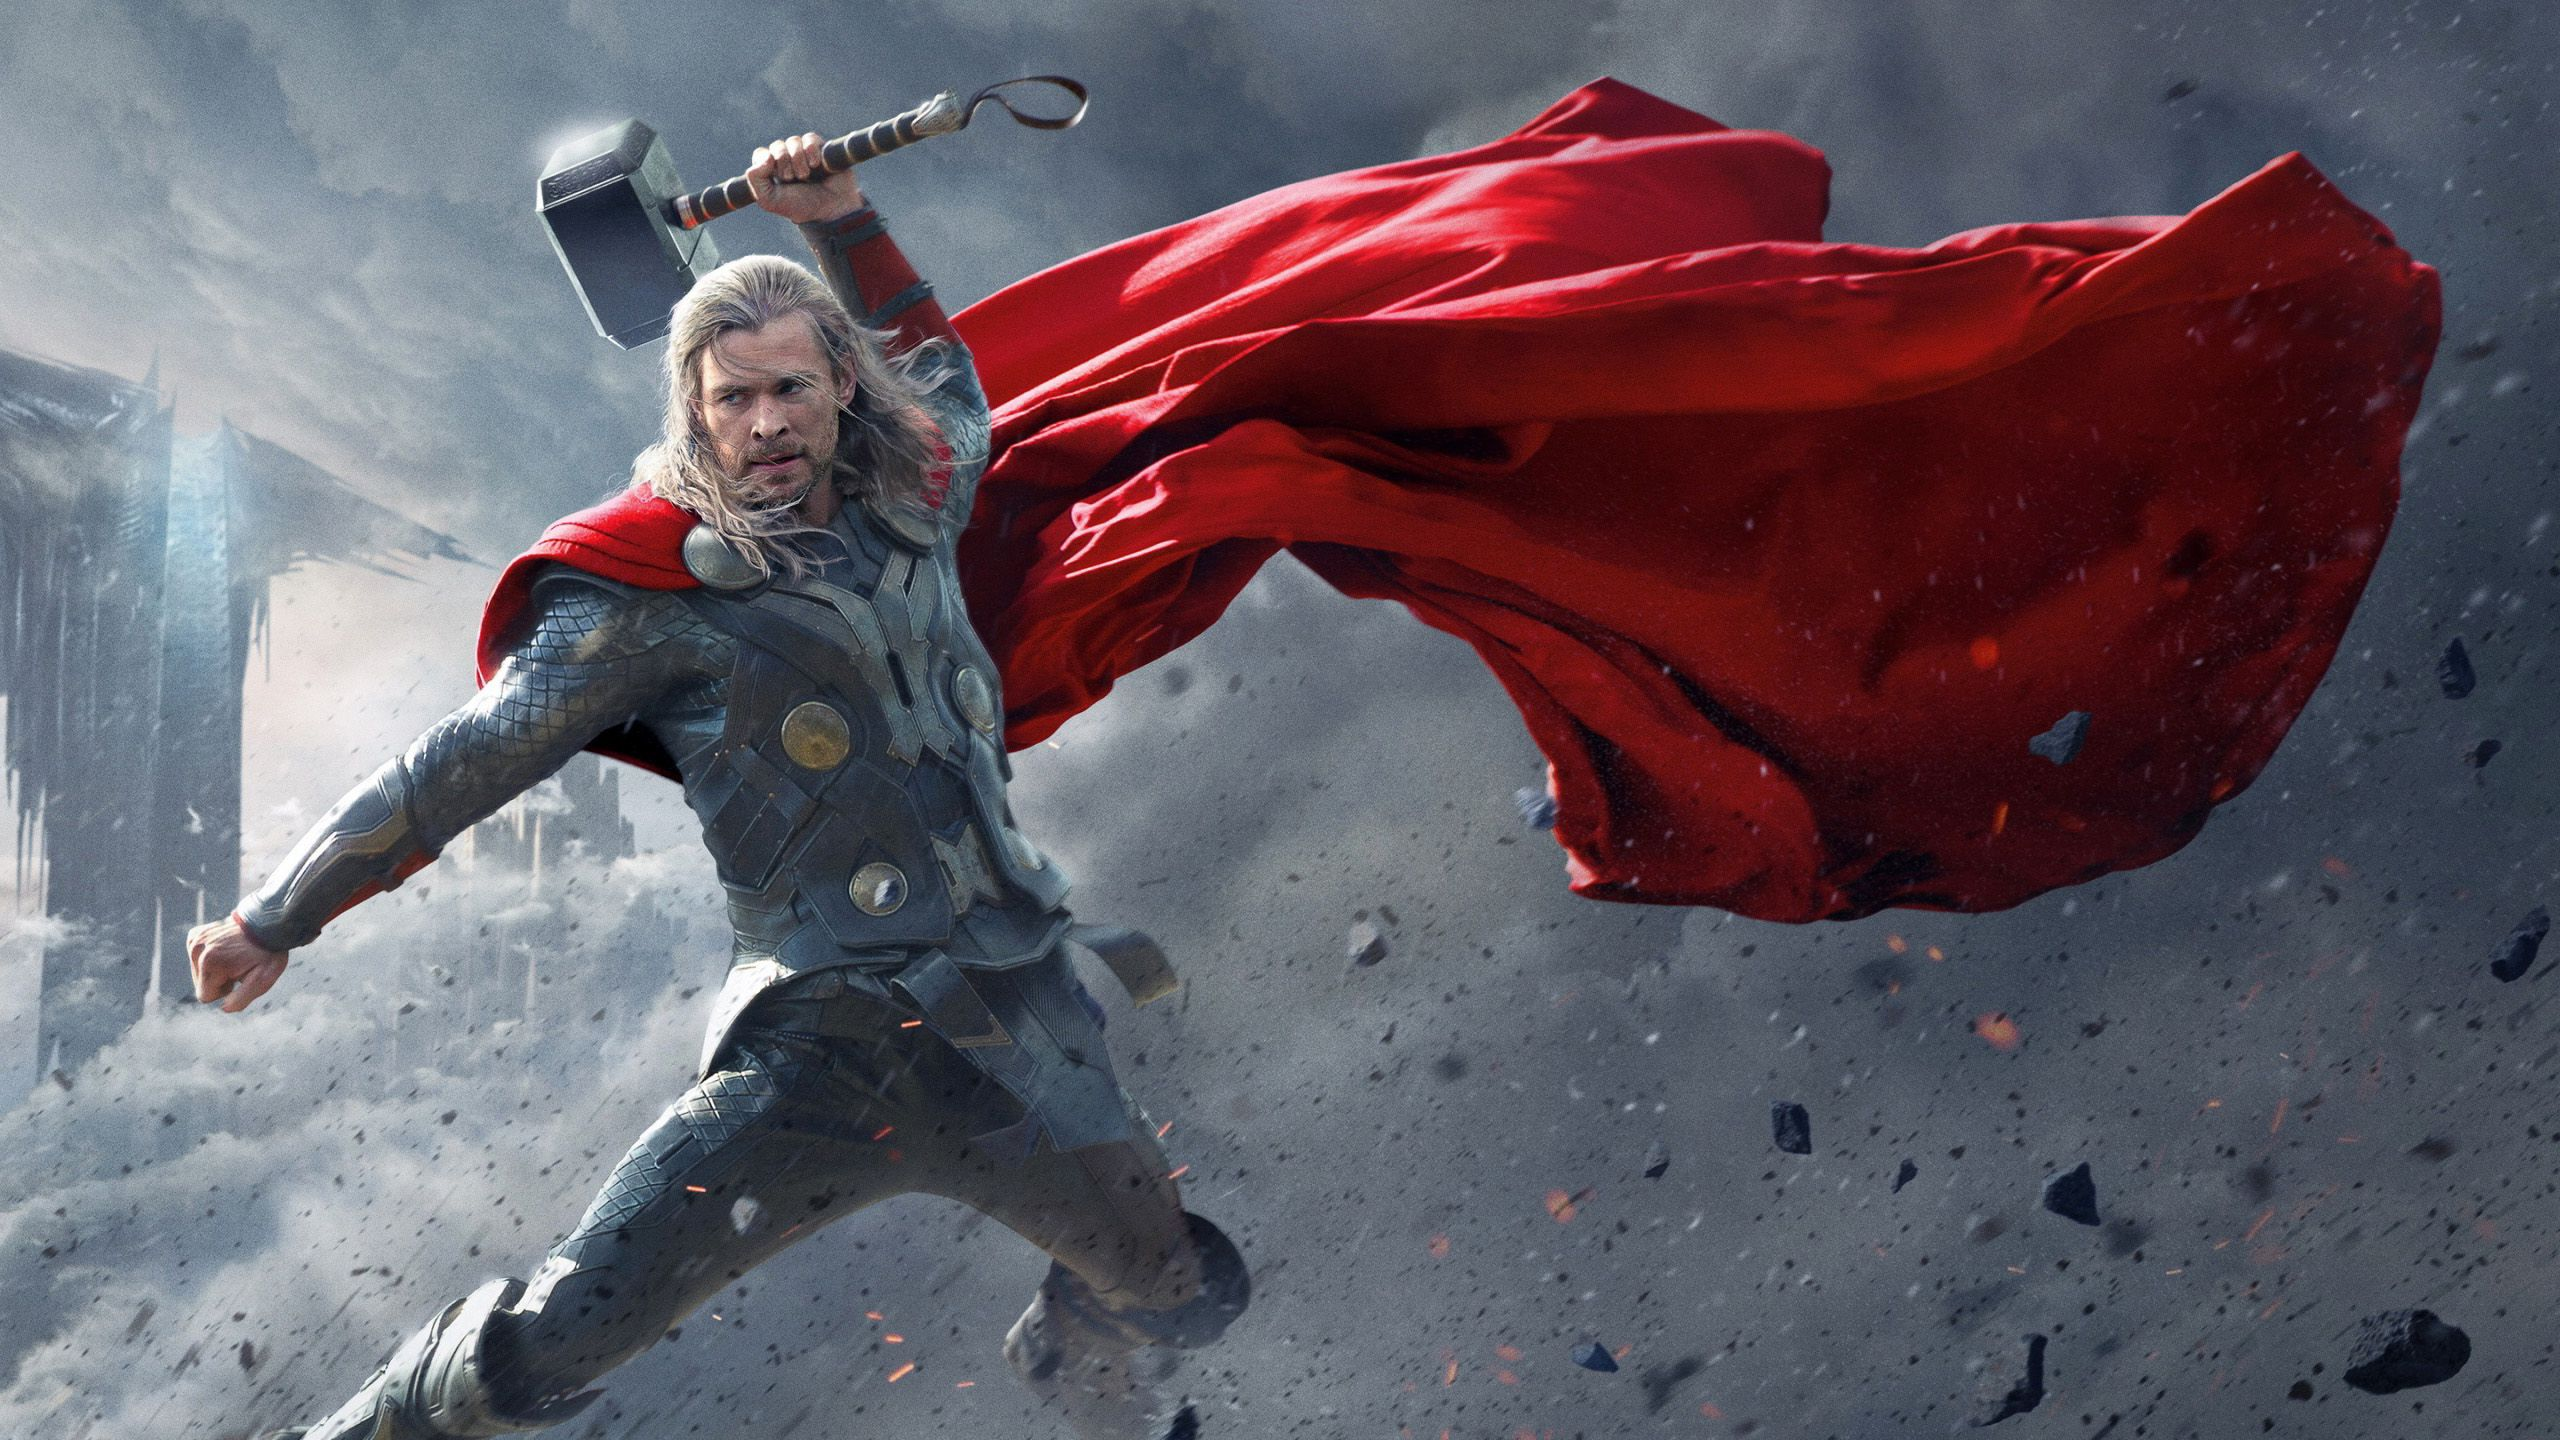 Chris Hemsworth In Thor HD Wallpapers 2560x1440 Thor in